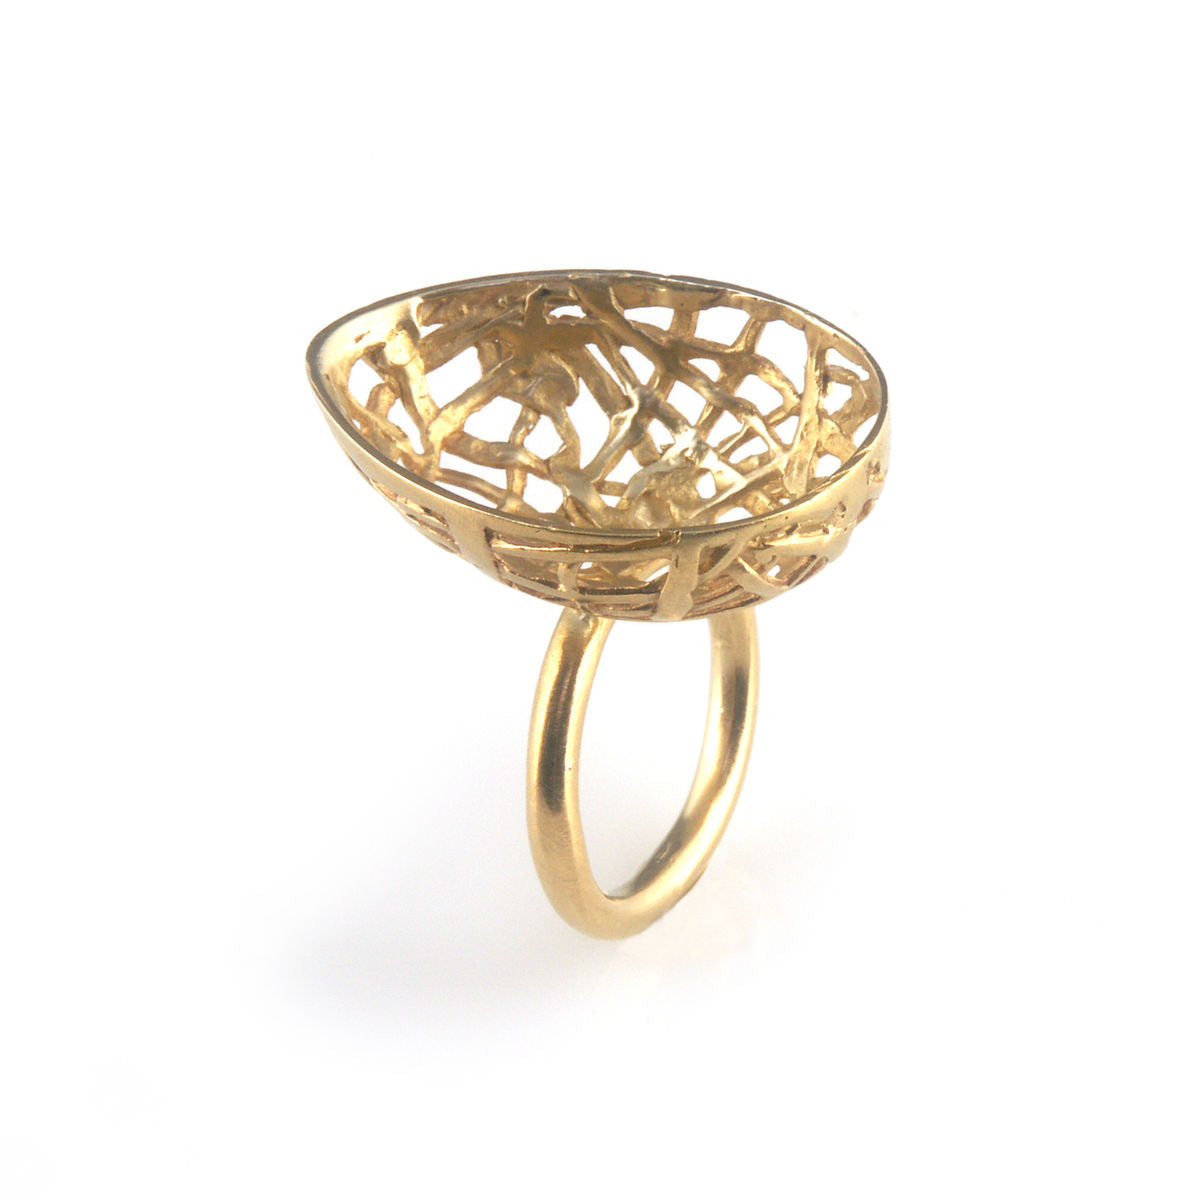 'Best Before' - 3cm gold plated silver egg ring